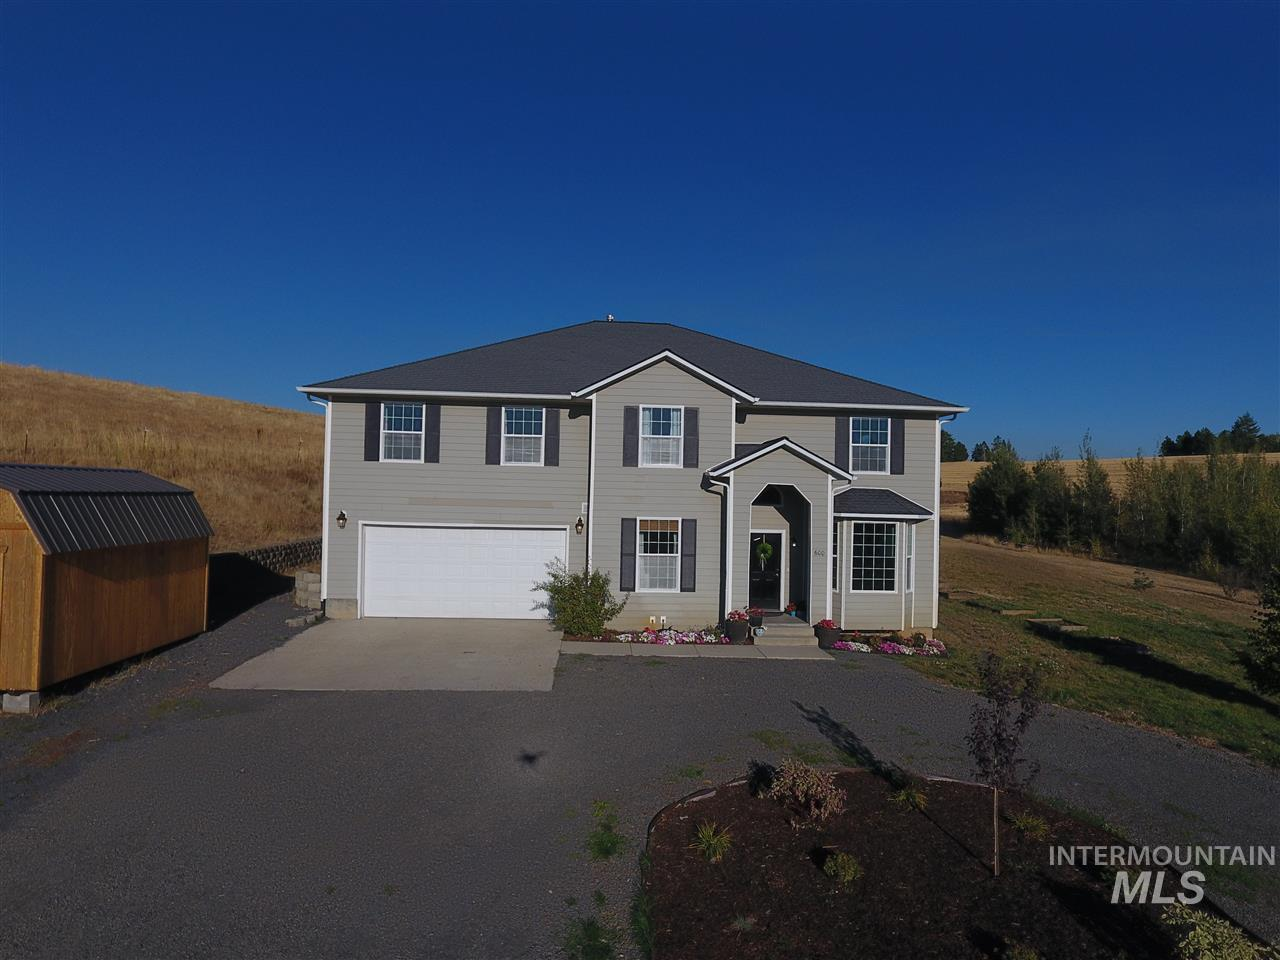 Single Family Home for Sale at 600 Pavel Court 600 Pavel Court Moscow, Idaho 83843